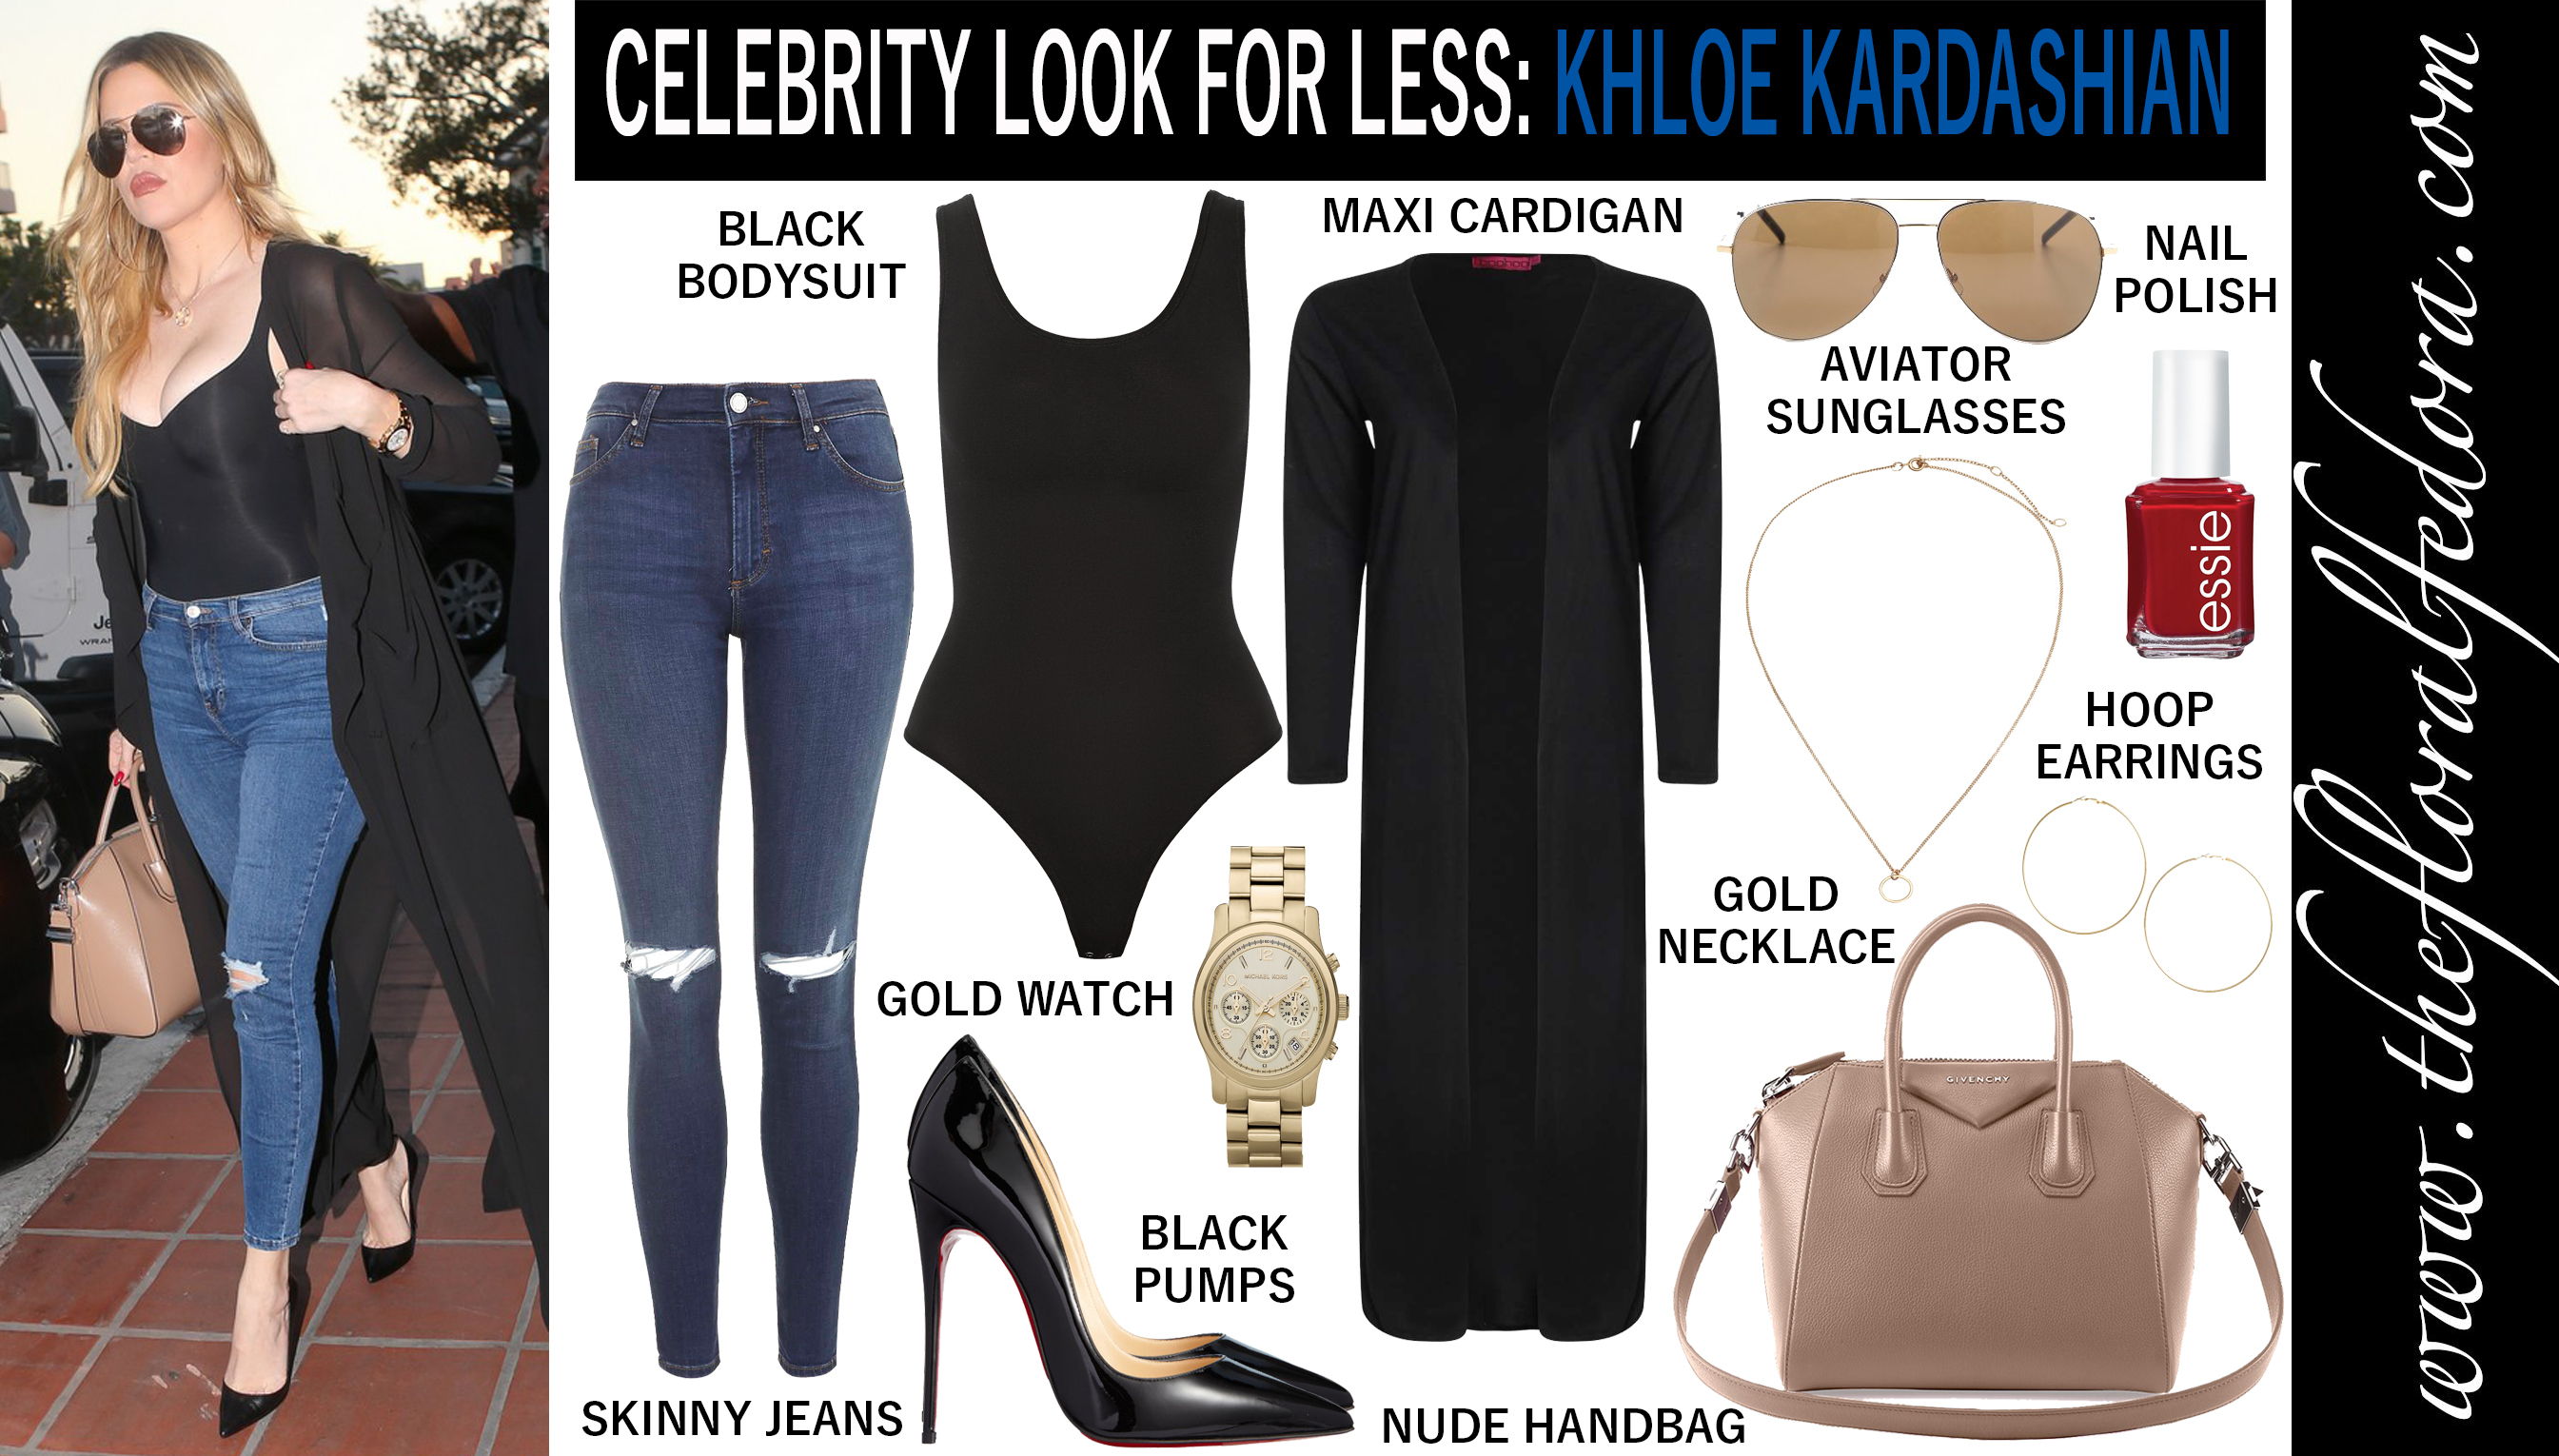 Celebrity Look for Less: Khloe Kardashian